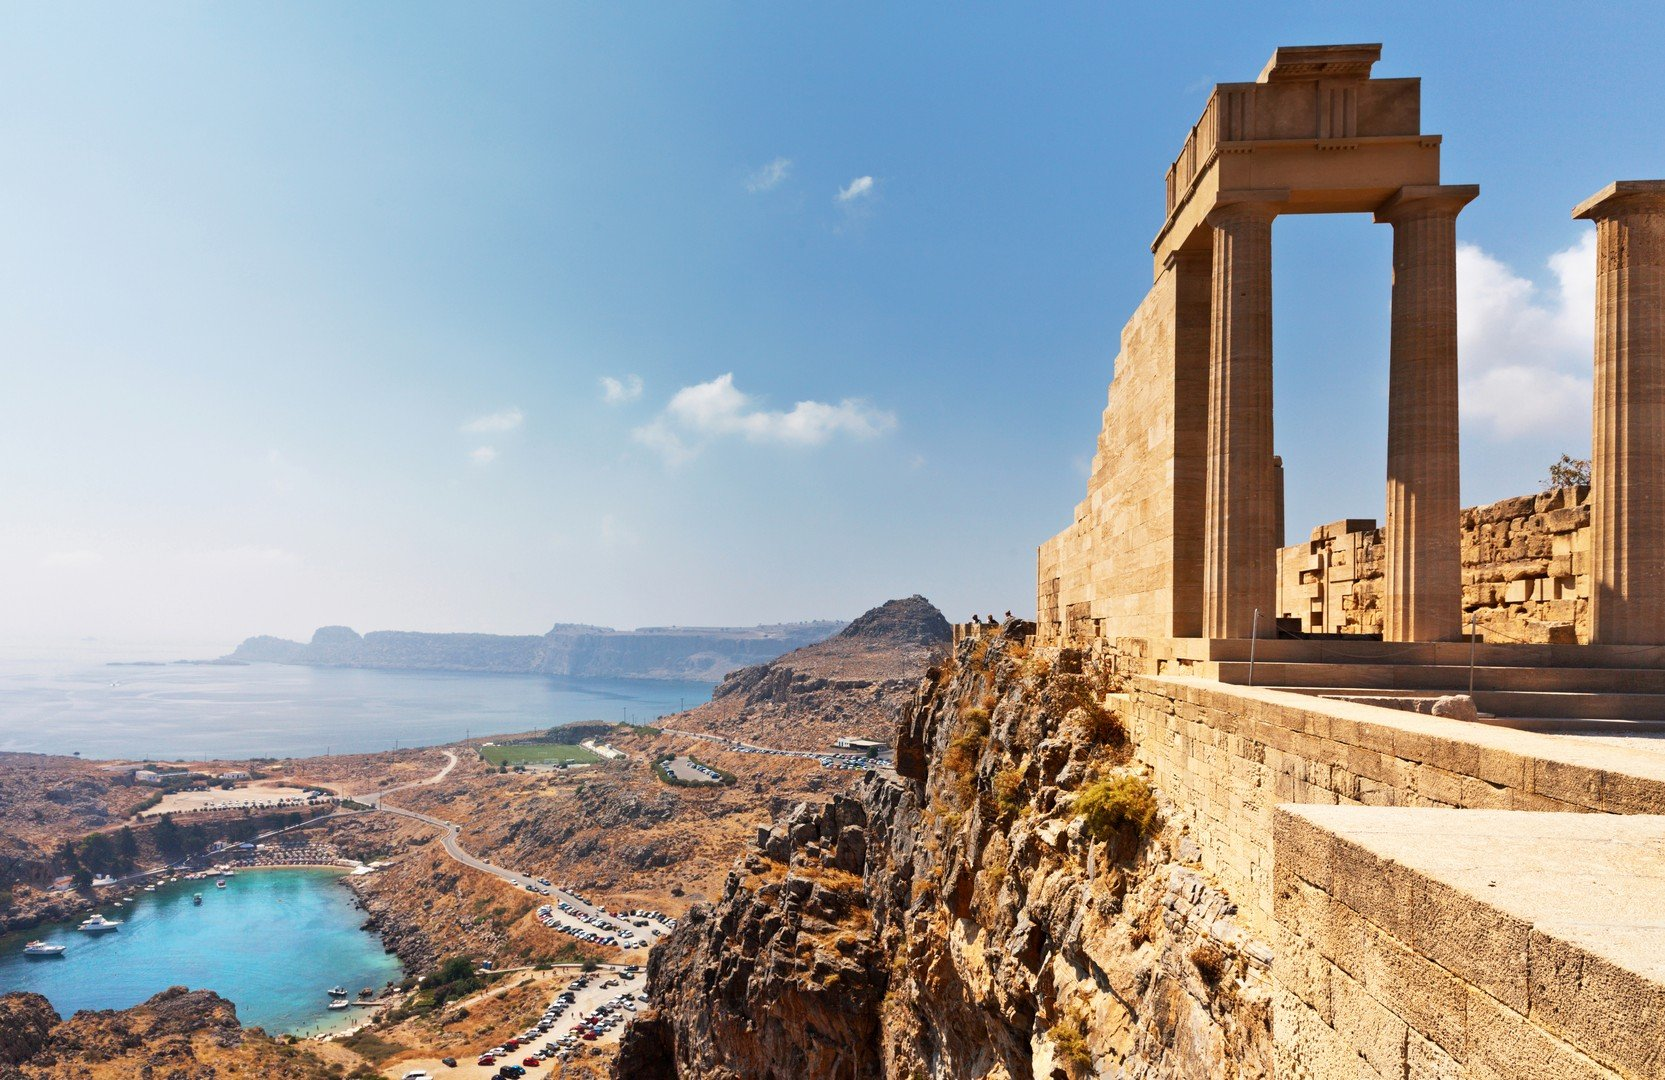 Rhodes Island. Acropolis of Lindos View from the height of the ancient temple of Athena Lindia IV century BC to St Paul's Bay in the form of the heart shutterstock_758688799